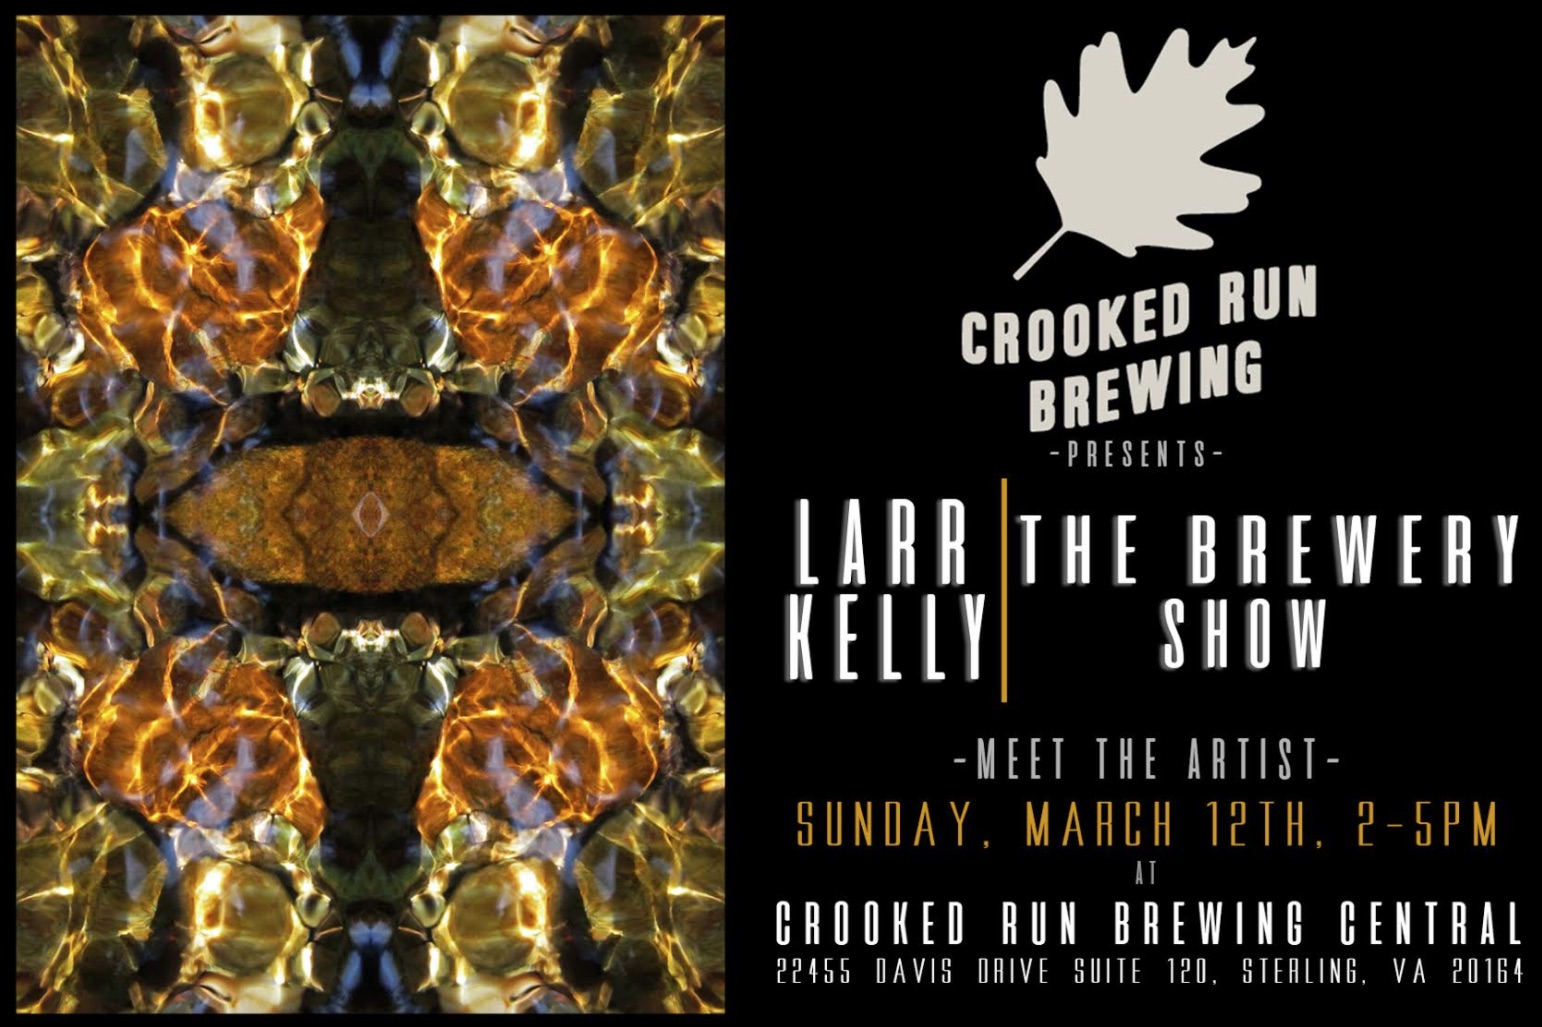 Crooked Run Brewing Presents Larr Kelly